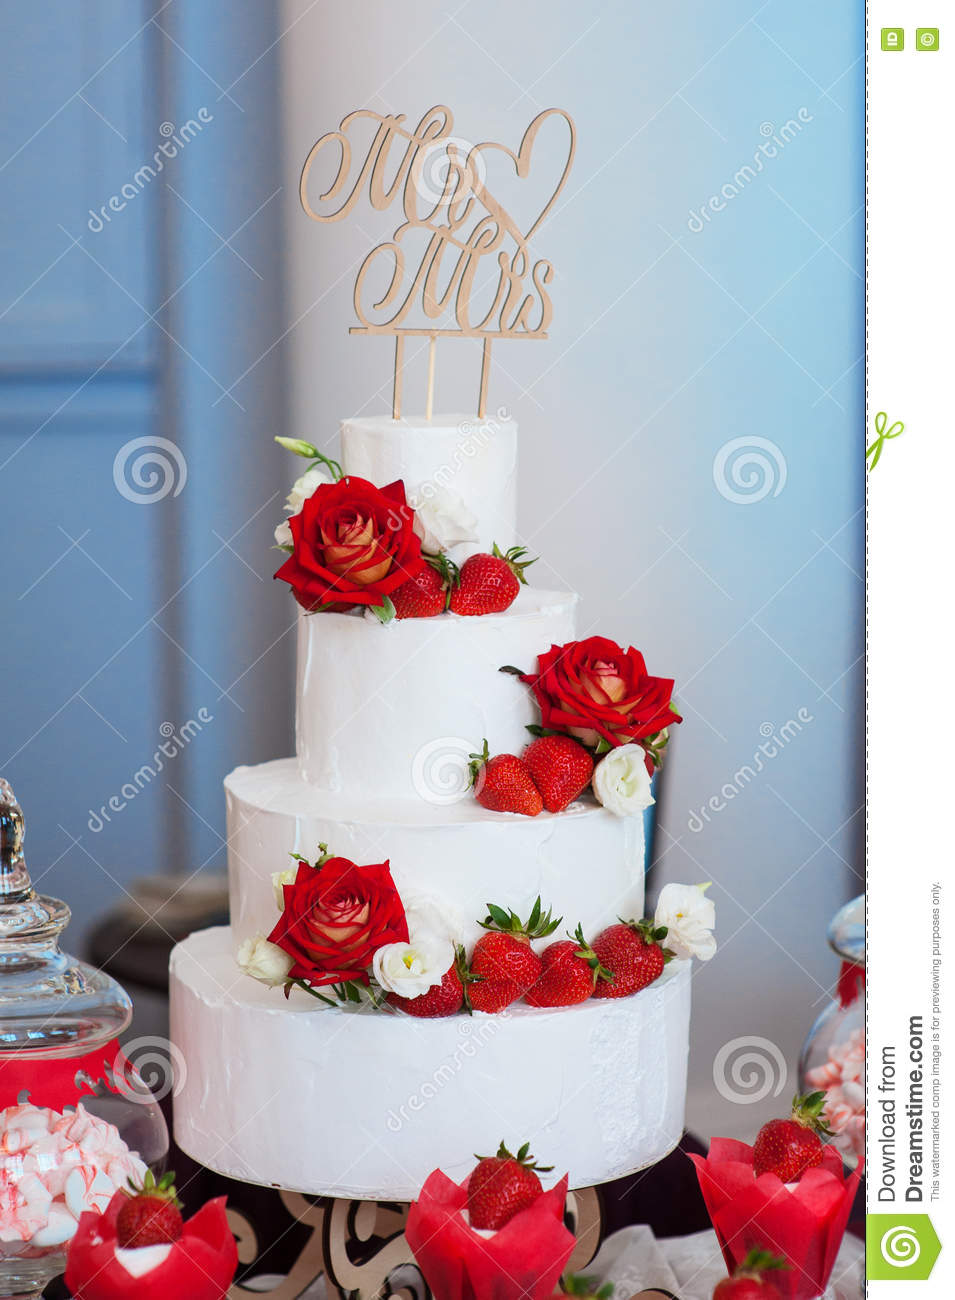 Four Layer White Wedding Cake With Red Roses And Strawberries Stock Image